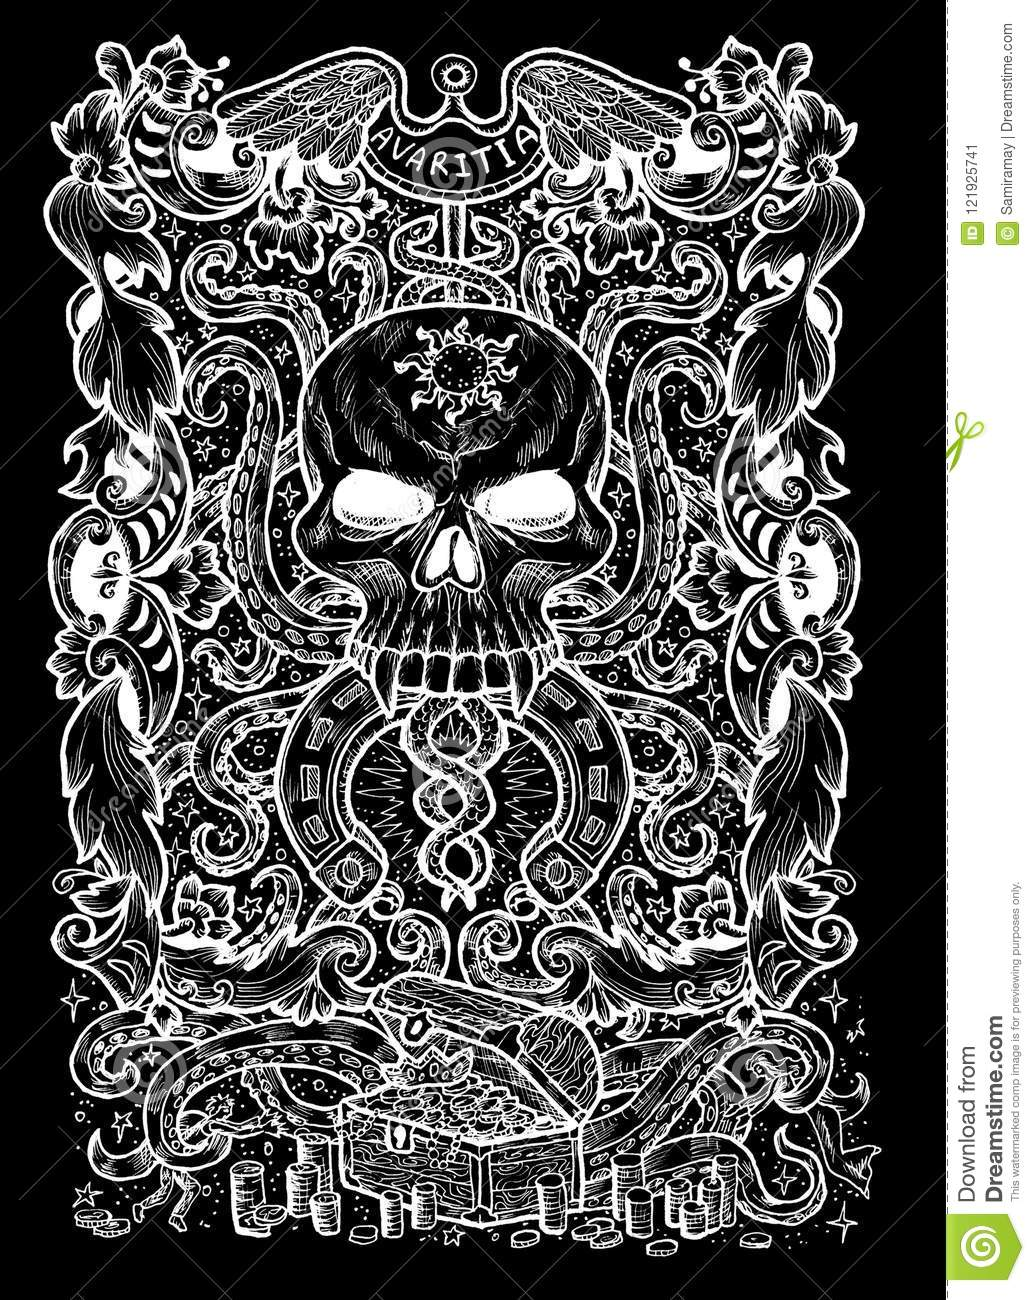 Greed Latin Word Avaritia Means Avarice Seven Deadly Sins Concept White Silhouette On Black Background Stock Illustration Illustration Of Fantasy Ancient 121925741